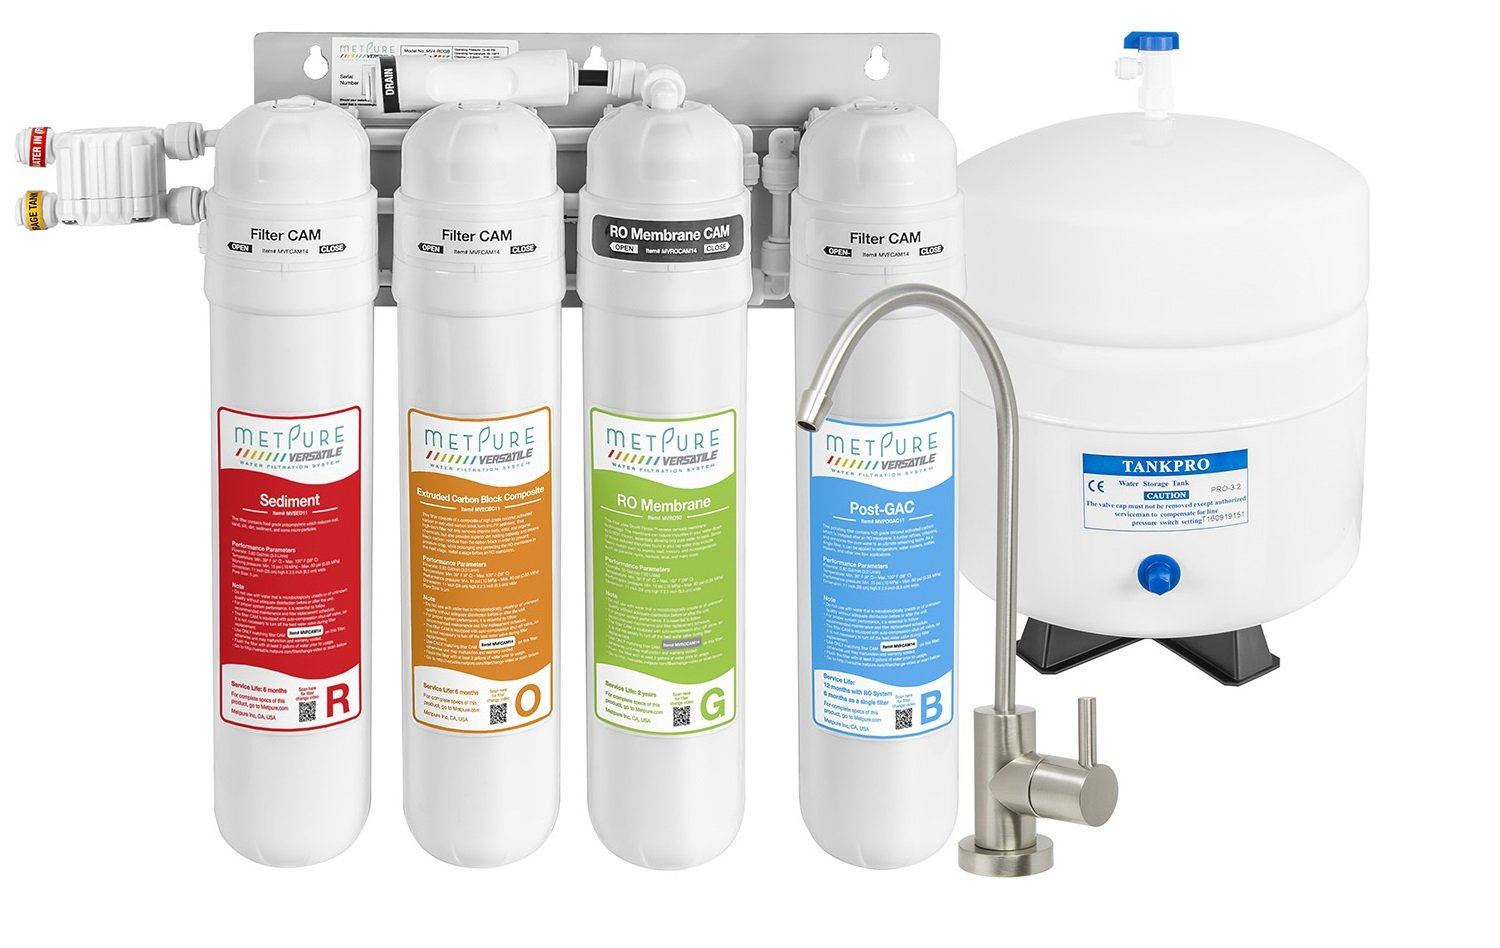 METPURE Reverse Osmosis Water Filtration System - 4 Stage RO Water Filter System With Faucet | Under Sink Water Purifier For Clean Drinking Water With Quick Twist Filters & A Simple Set Up - 50 GPD